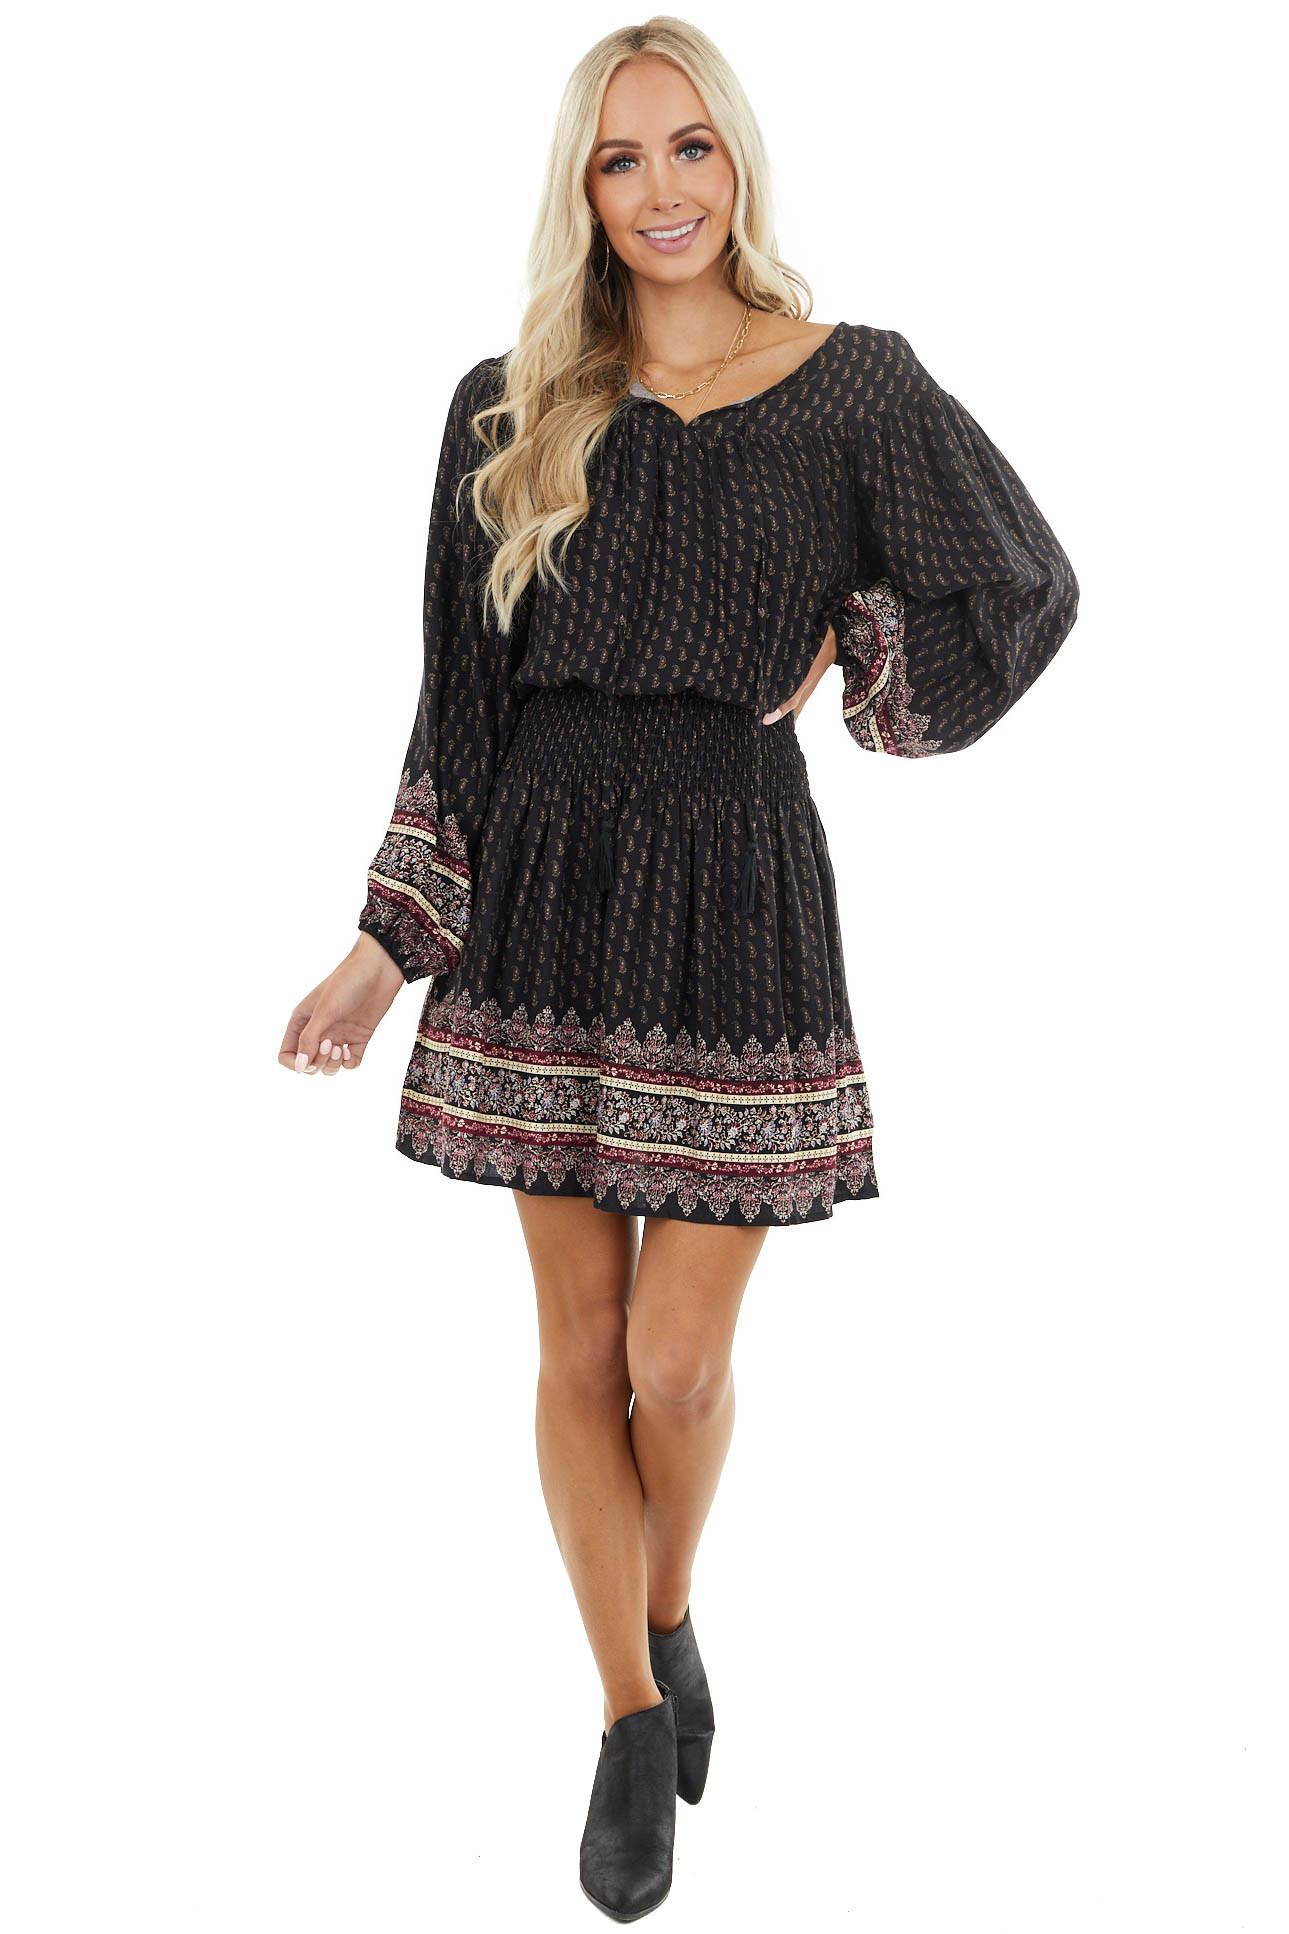 Black Paisley Dress with Smocked Waist and Floral Details